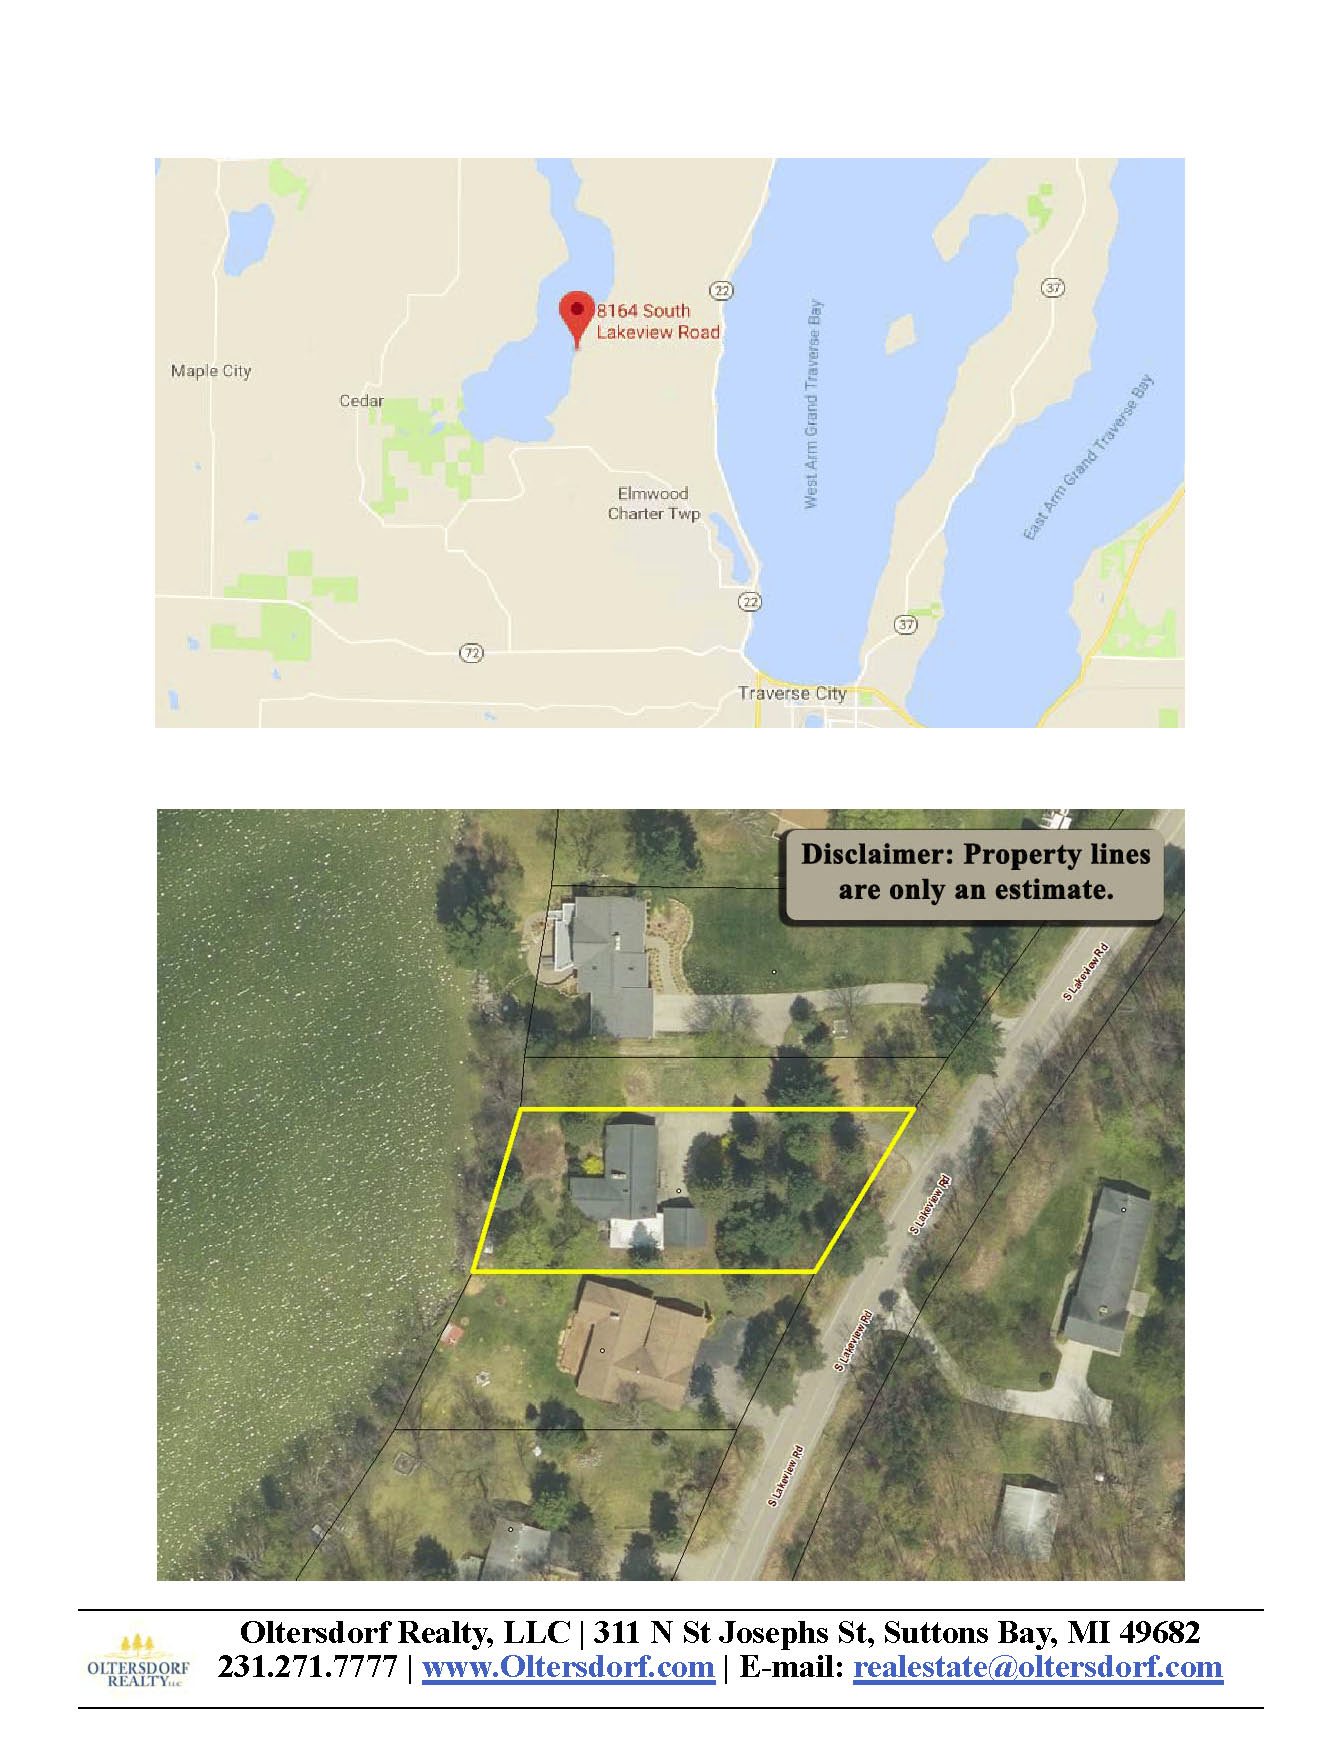 8164 S Lakeview Road, Traverse City, MI – Ranch Home & 100' on Lake Leelanau - For Sale by Oltersdorf Realty LLC - Marketing Packet (9).jpg